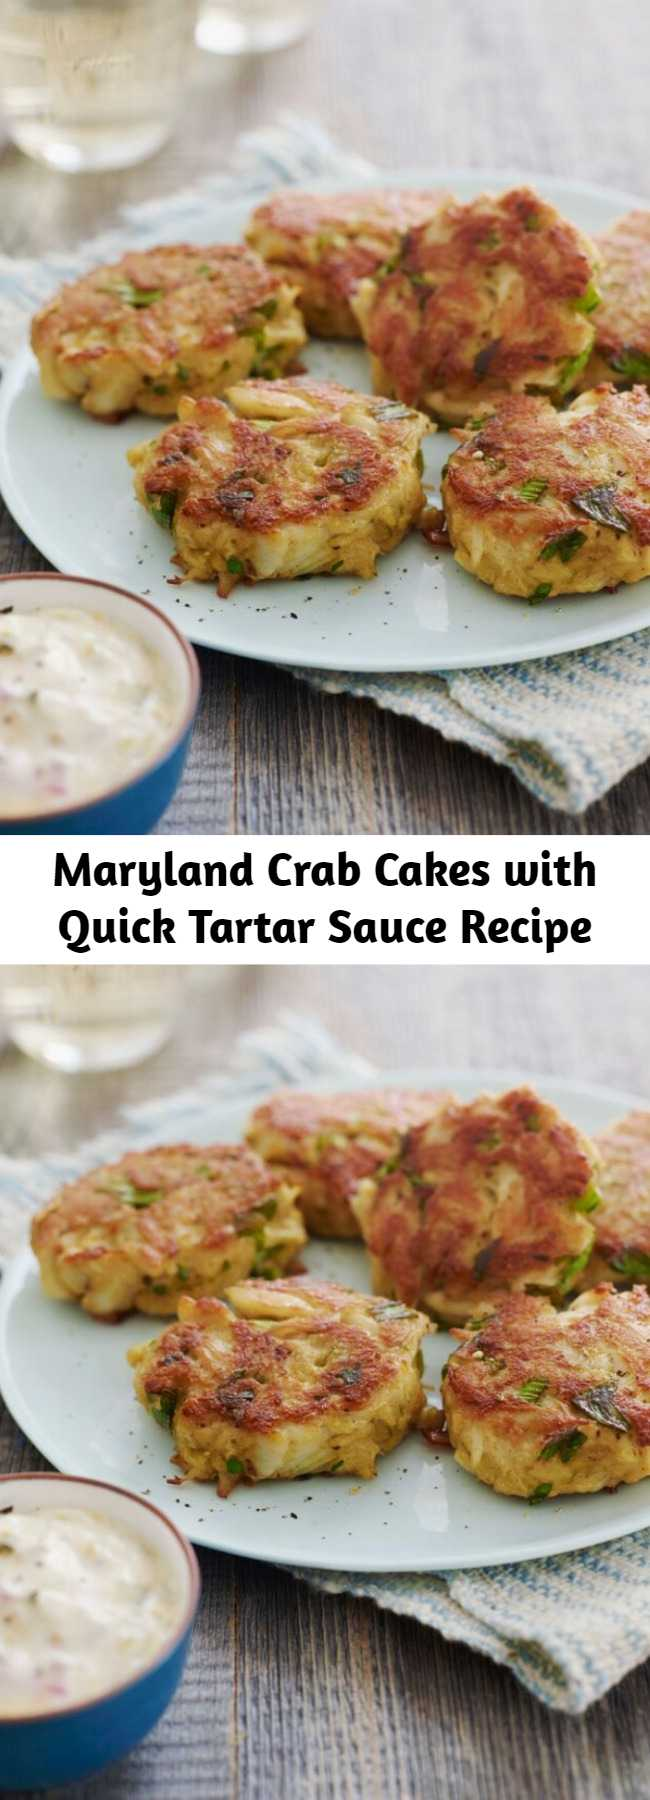 Maryland Crab Cakes with Quick Tartar Sauce Recipe - A Maryland staple, these crab cakes made from fresh lump crab meat and Old Bay are authentic and easy to prepare.